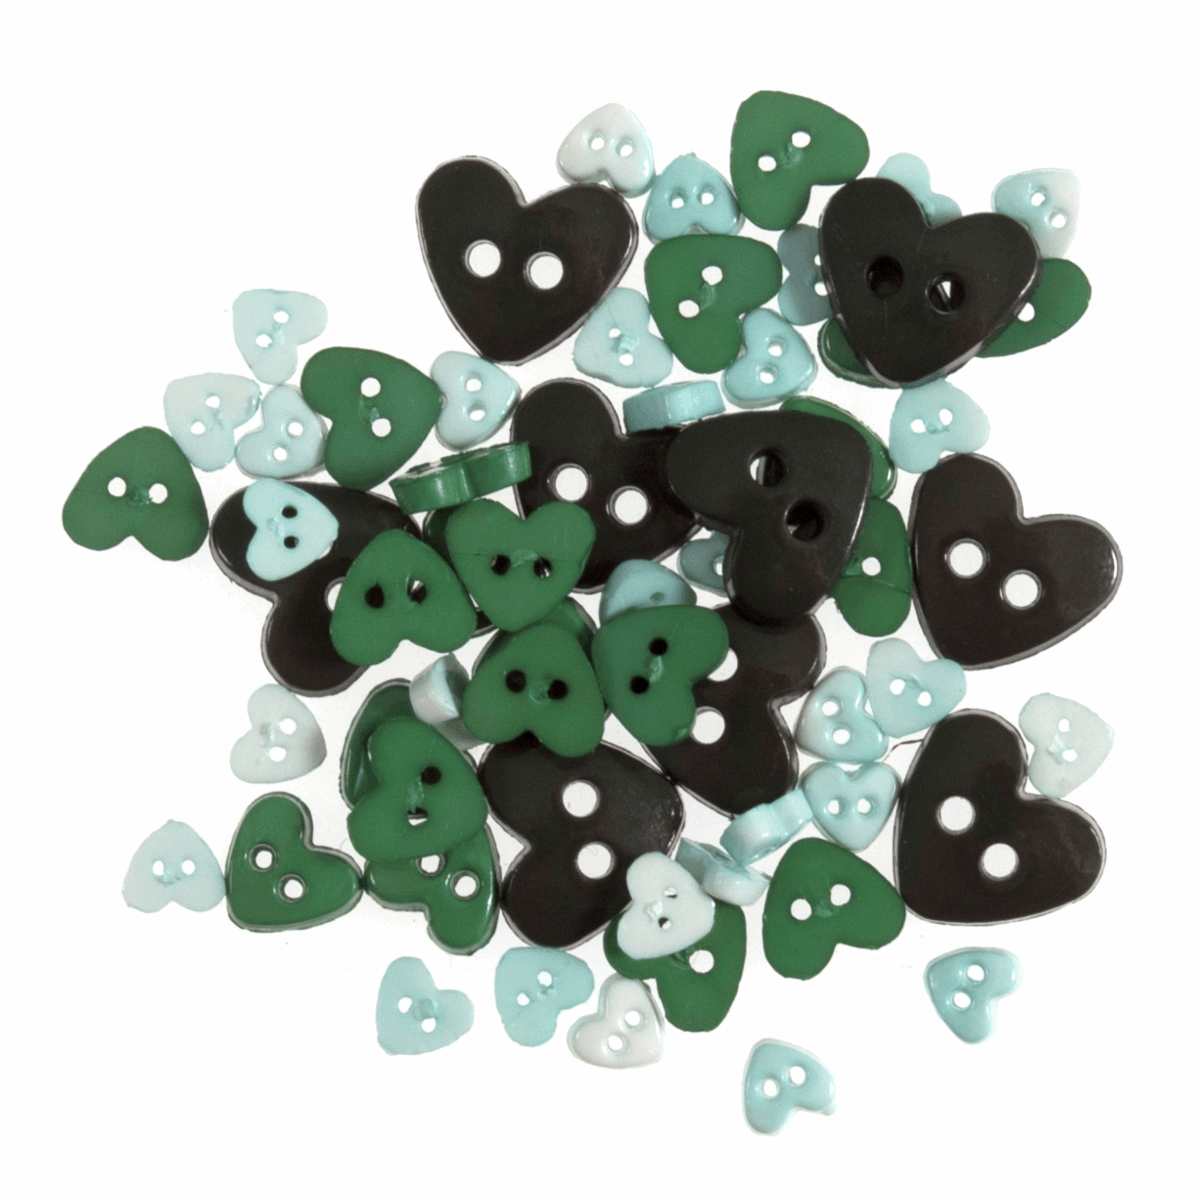 Picture of Mini Craft Buttons: Hearts: Green: 2.5g